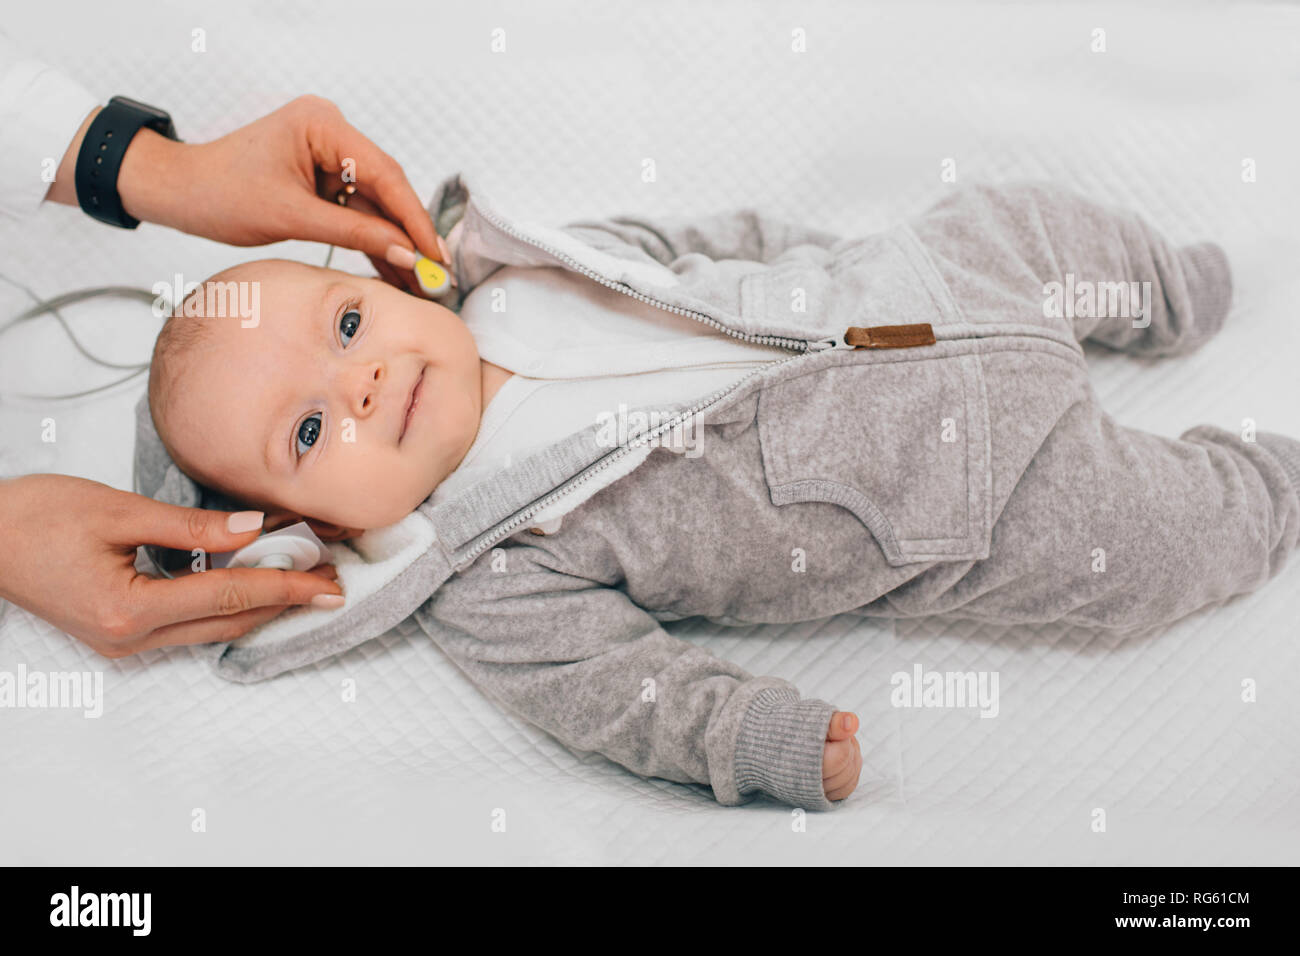 Hearing Test baby , Cortical auditory evoked potential analyzer. hearing screening - Stock Image